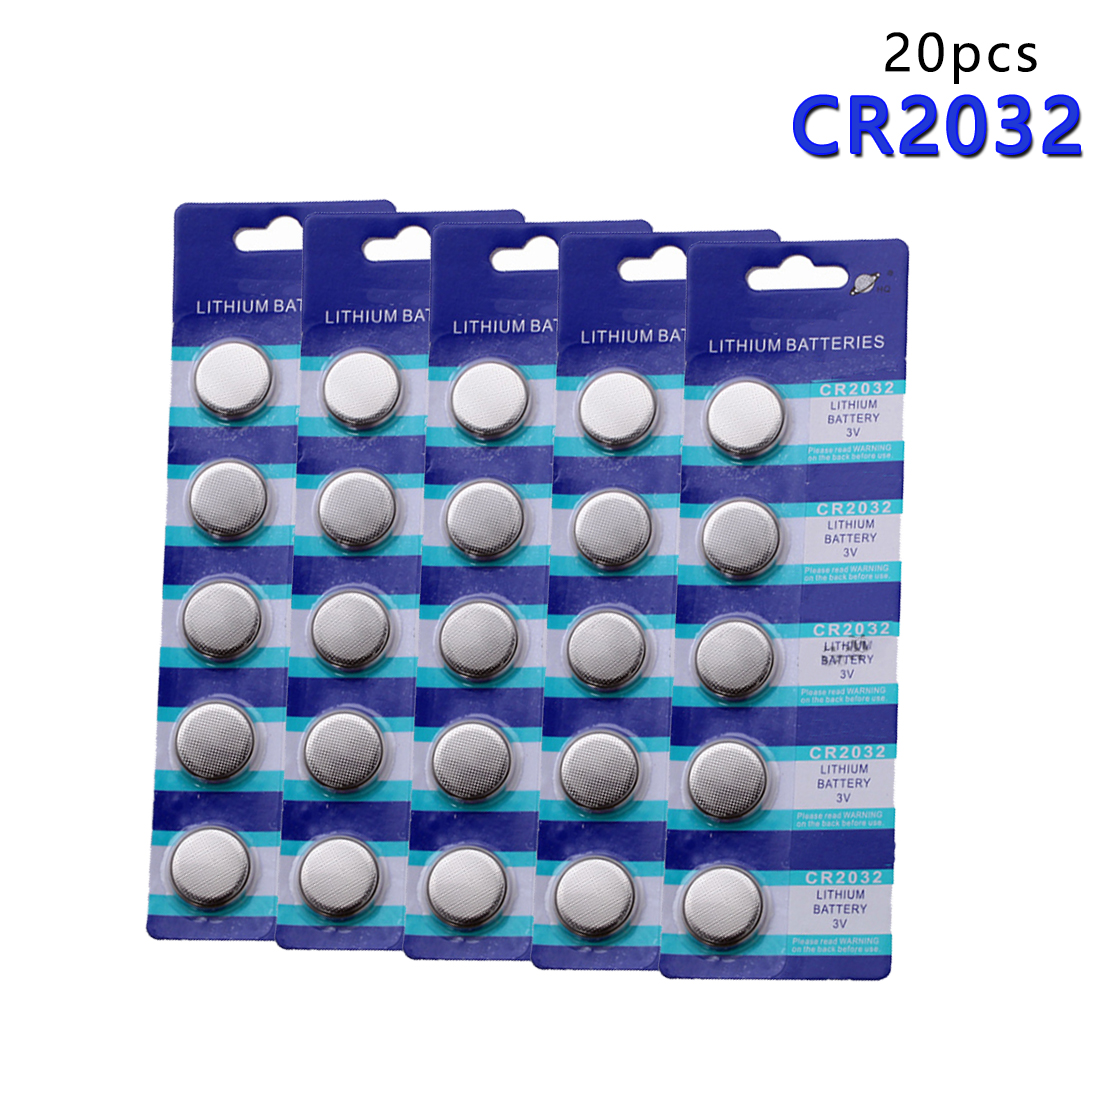 centechia Top quality 20pcs Pro CR2032 BR2032 DL2032 SB-T15 EA2032C ECR2032 L2032 CR 2032 Lithium Li-ion 3V Button Coin Battery ...